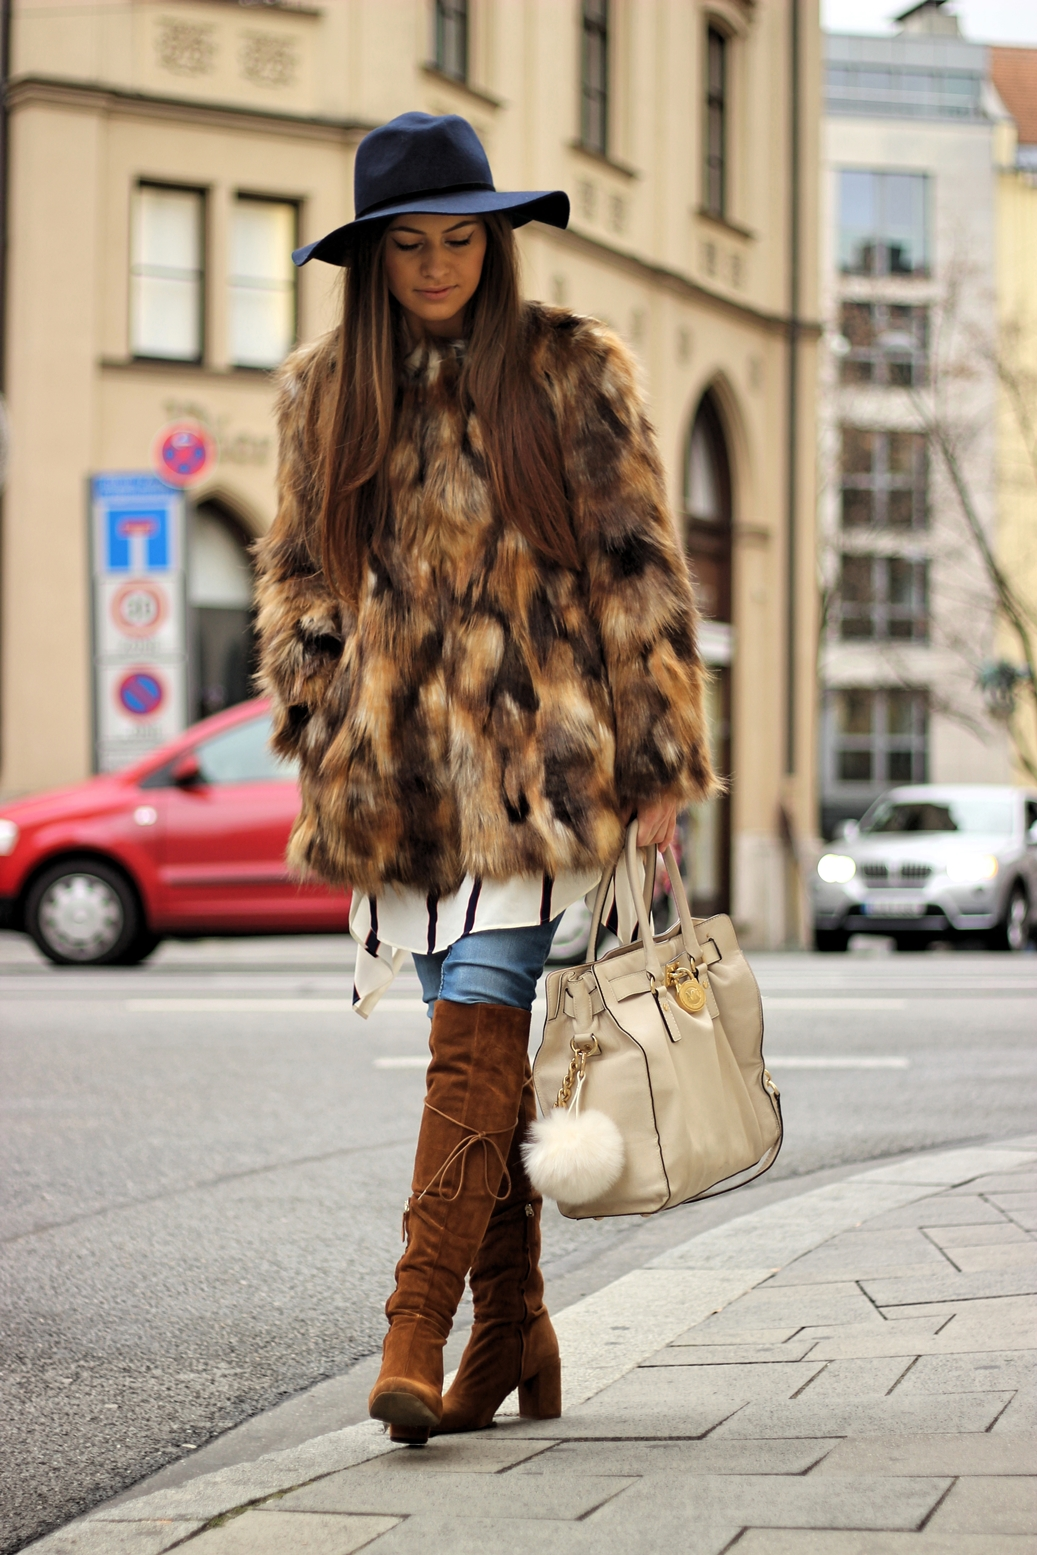 zara-outfit-style-blog-germany-street-fur-hat-shoes